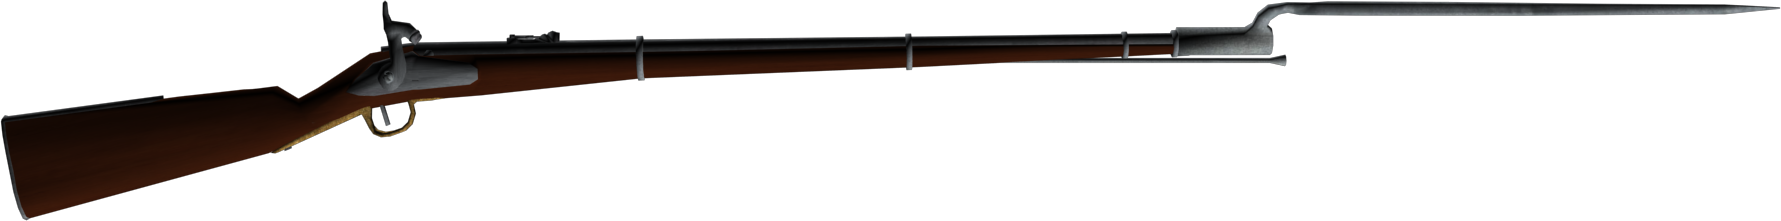 musket_p1853.png